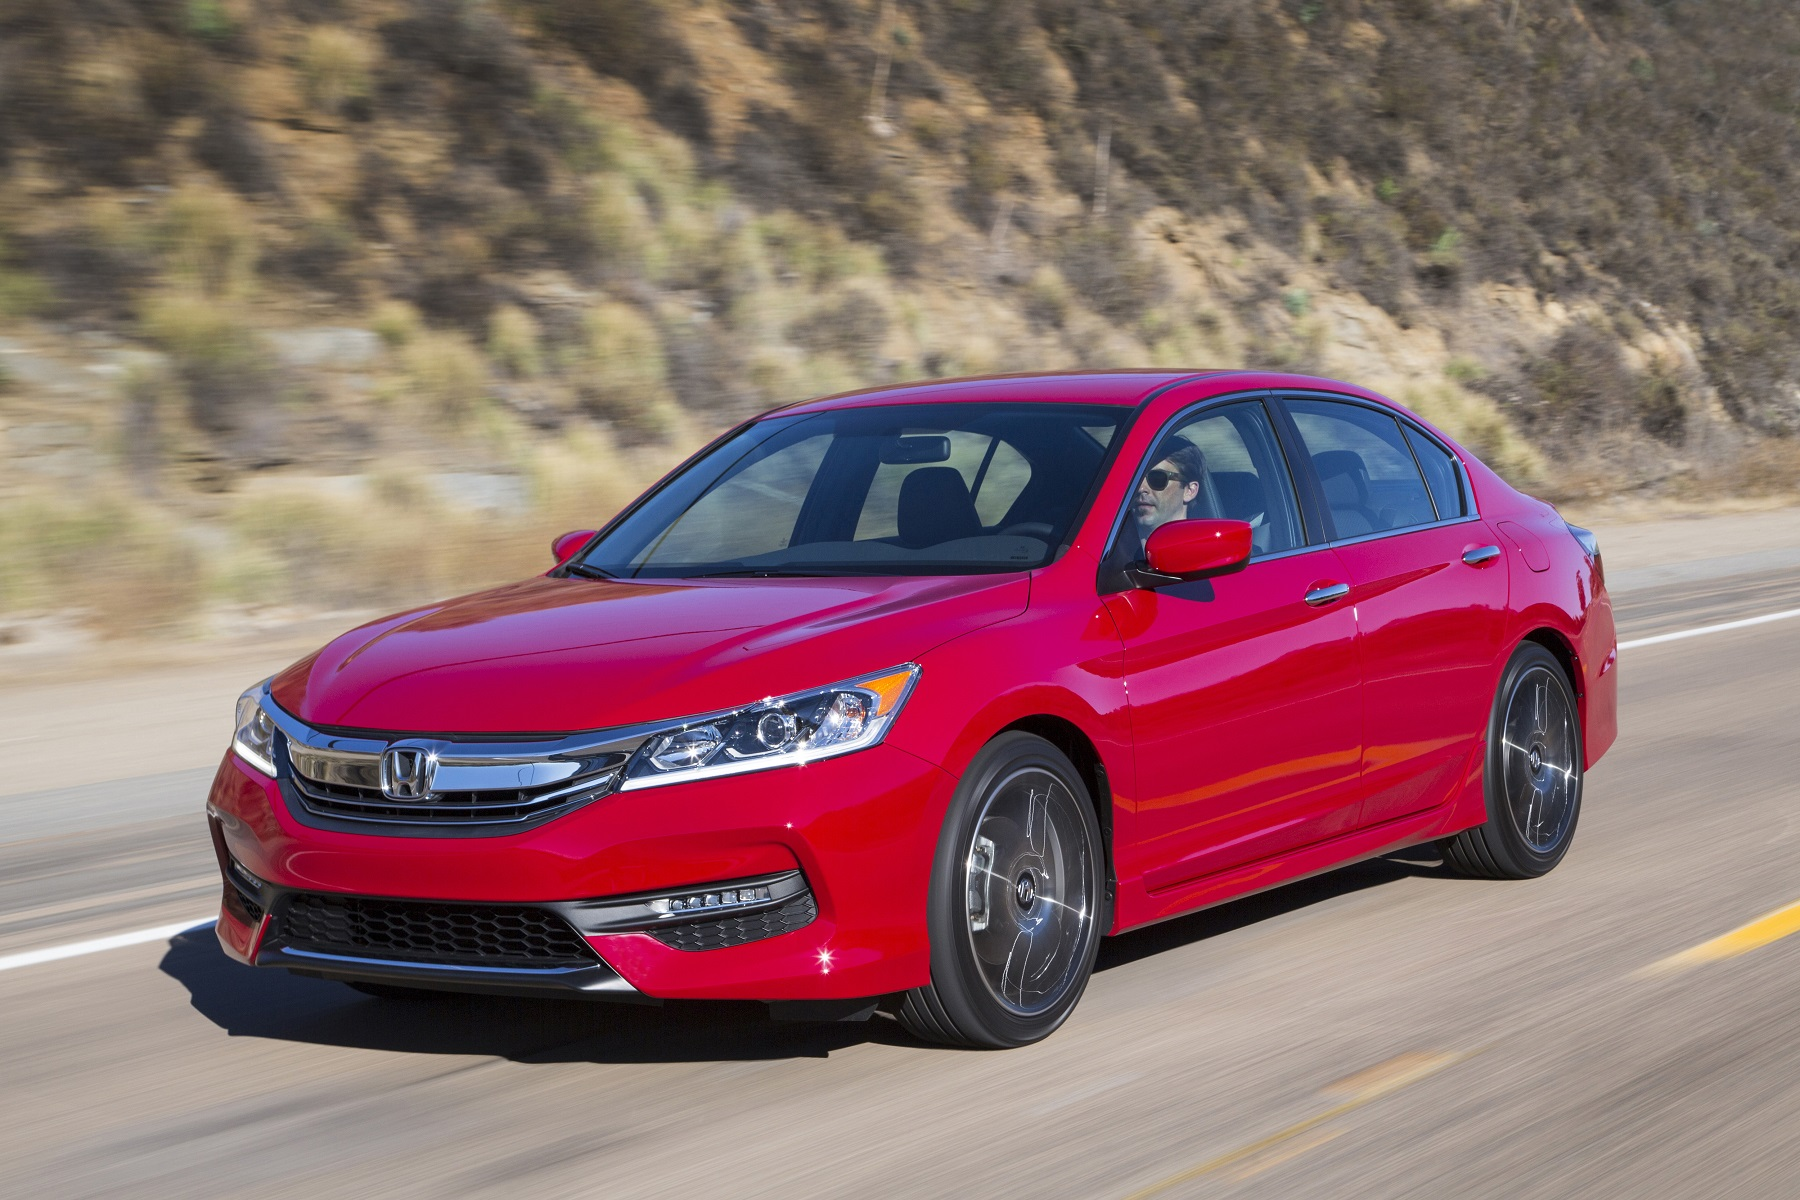 Manufacturer photo: Family cars to put on your test-drive list include the Chrysler Pacifica, Chevrolet Malibu, Honda Accord, Nissan Altima and Volkswagen Passat.